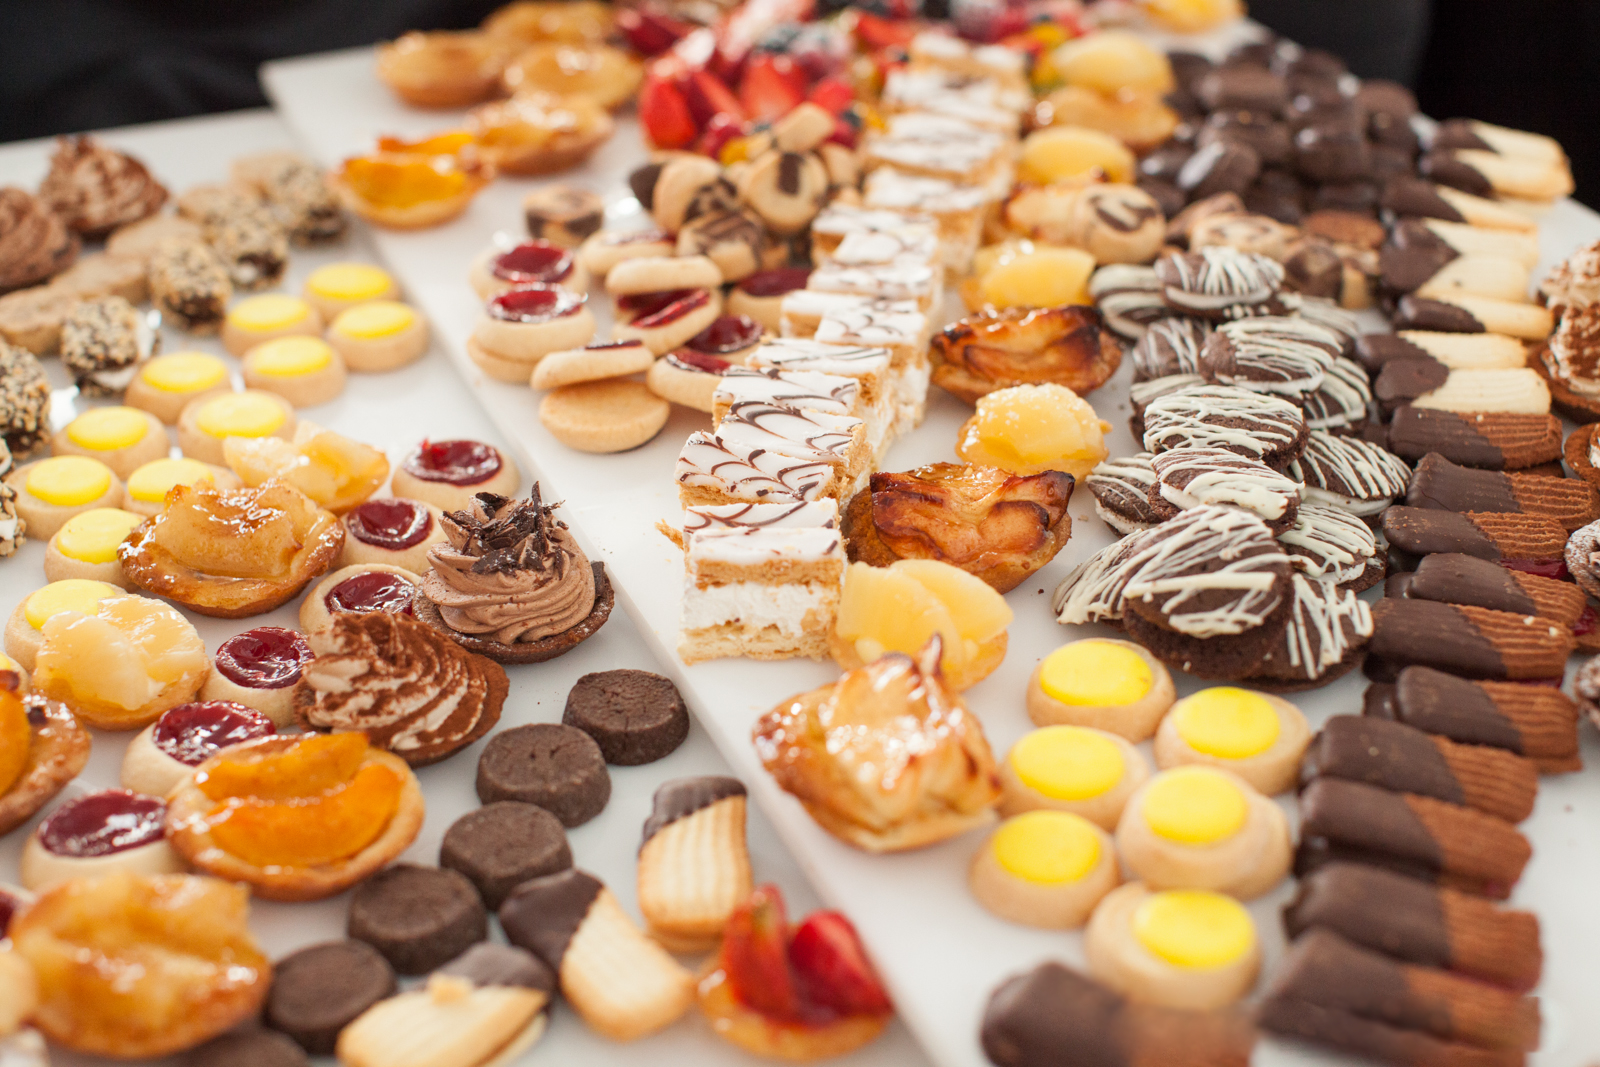 Decorative cookies and pastries